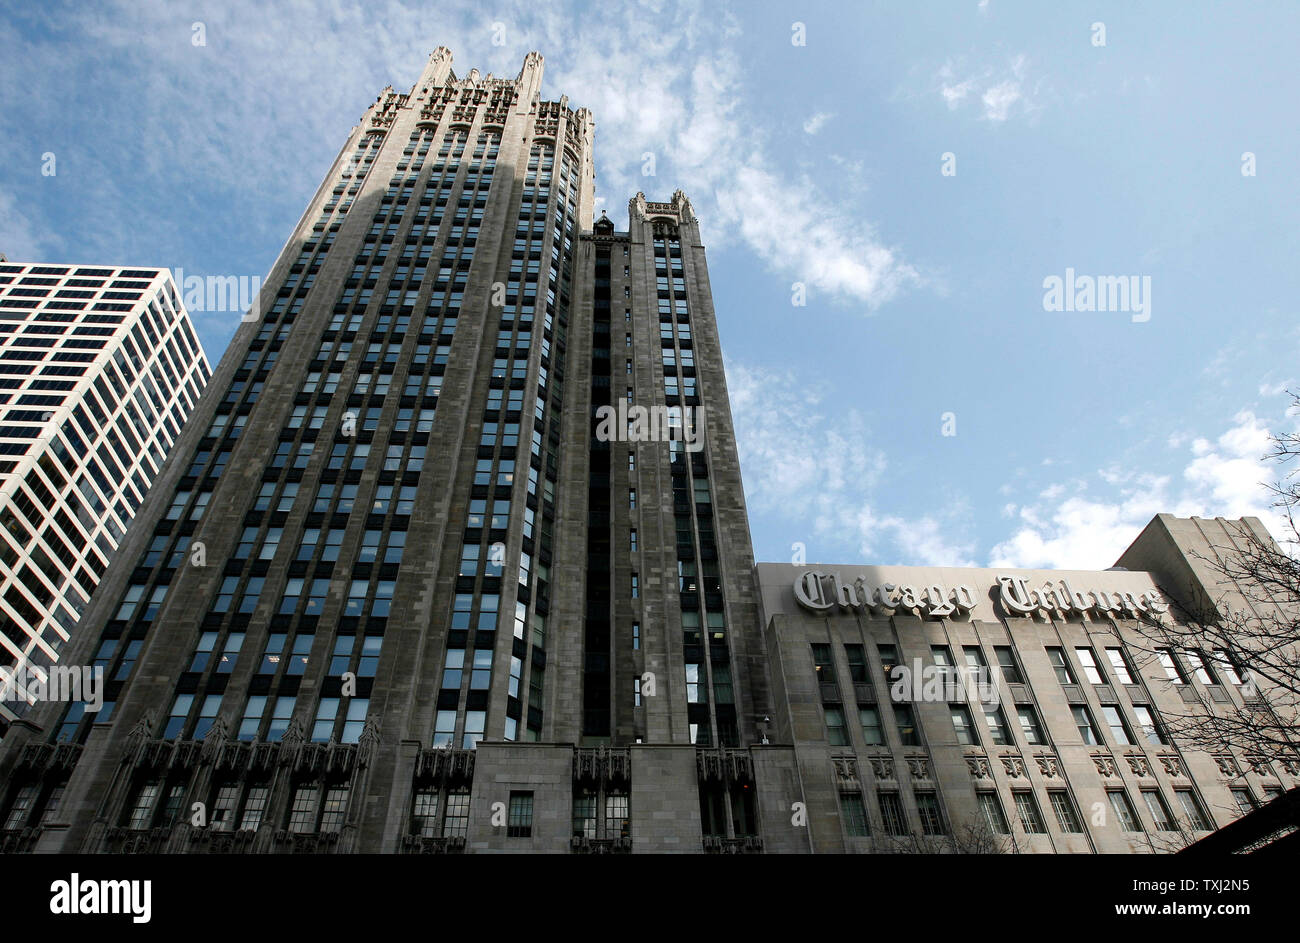 The Chicago Tribune company corporate headquarters stands in downtown Chicago on April 2, 2007. Monday the Tribune Co. accepted an $8.2 billion buyout offer from real estate investor Sam Zell. The deal, which is not finalized until approved by the shareholders, leaves the Tribune's board the option of accepting a higher bid and also includes selling the Chicago Cubs at the end of the 2007 season. (UPI Photo/Brian Kersey) Stock Photo